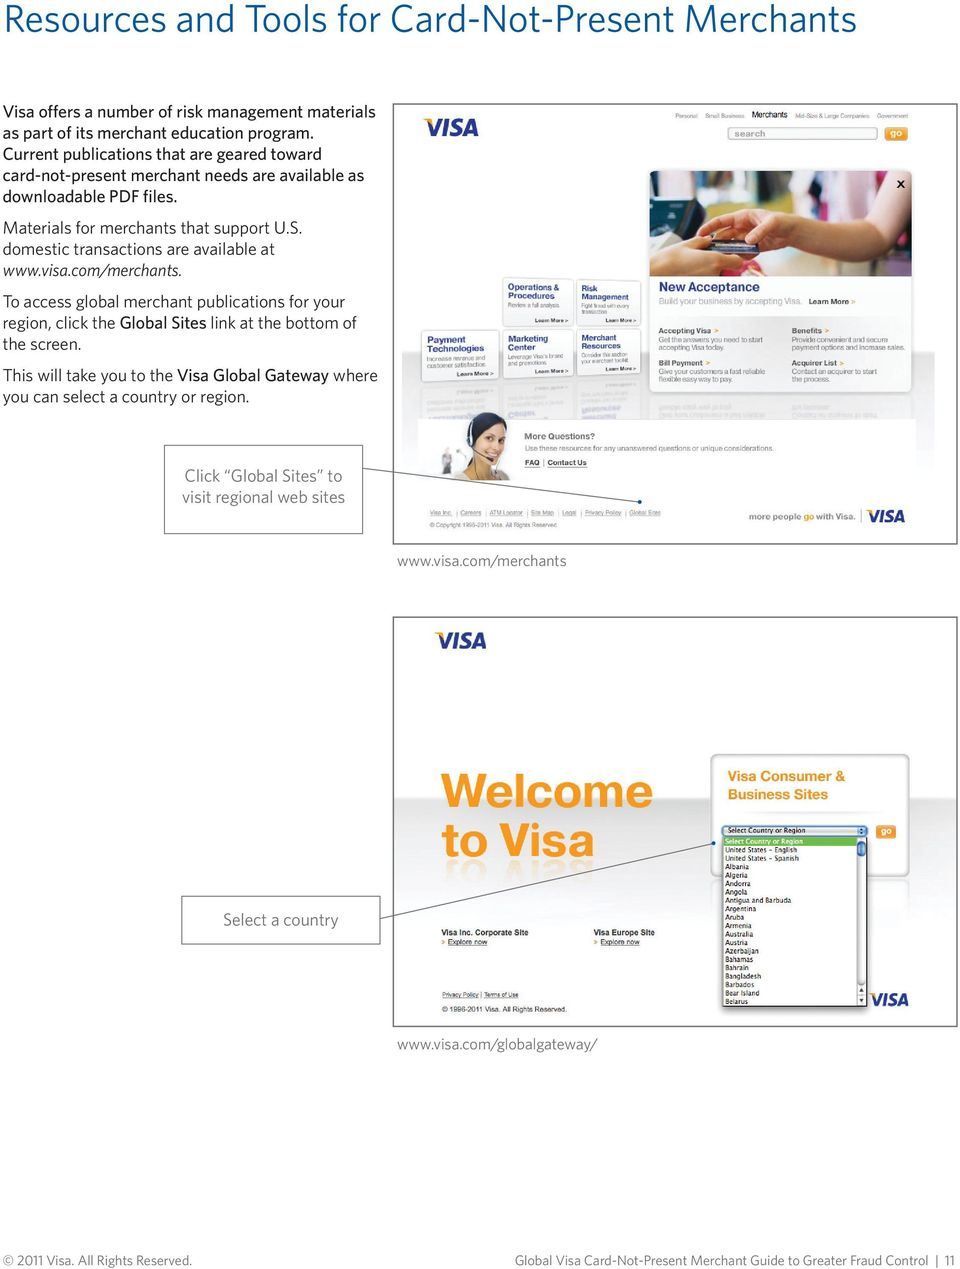 domestic transactions are available at www.visa.com/merchants. To access global merchant publications for your region, click the Global Sites link at the bottom of the screen.